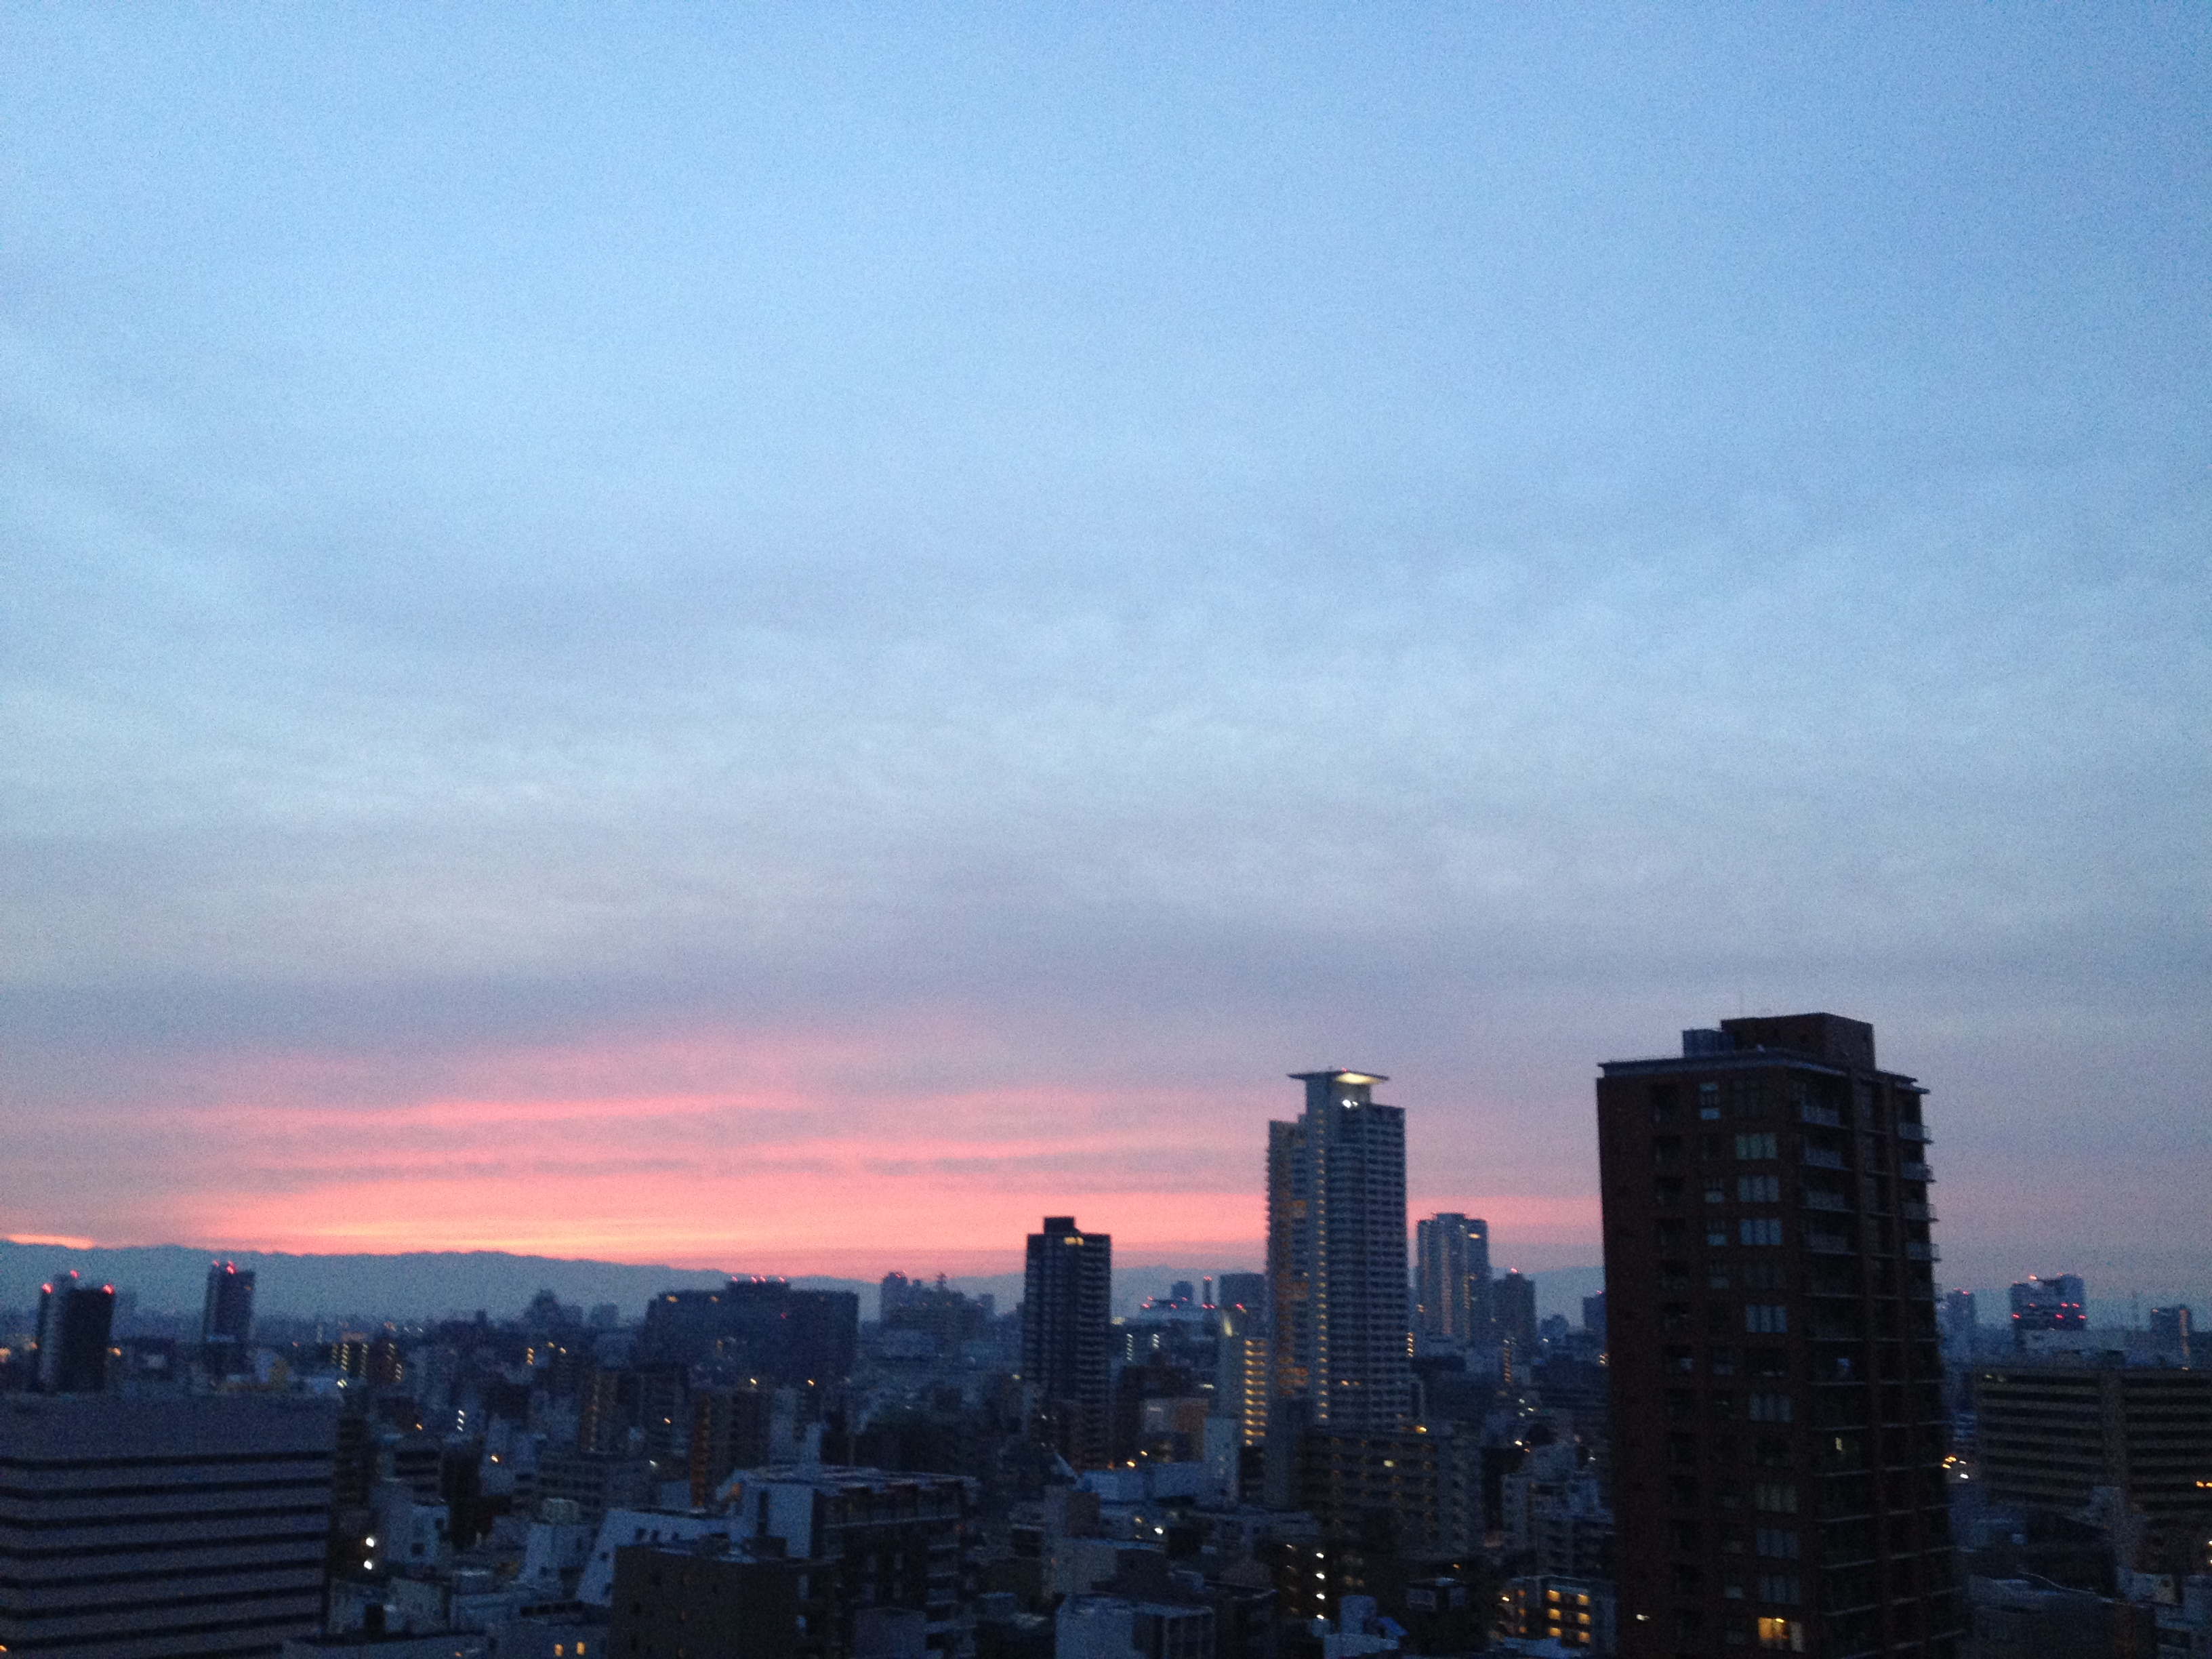 Sunrise on Nov.27